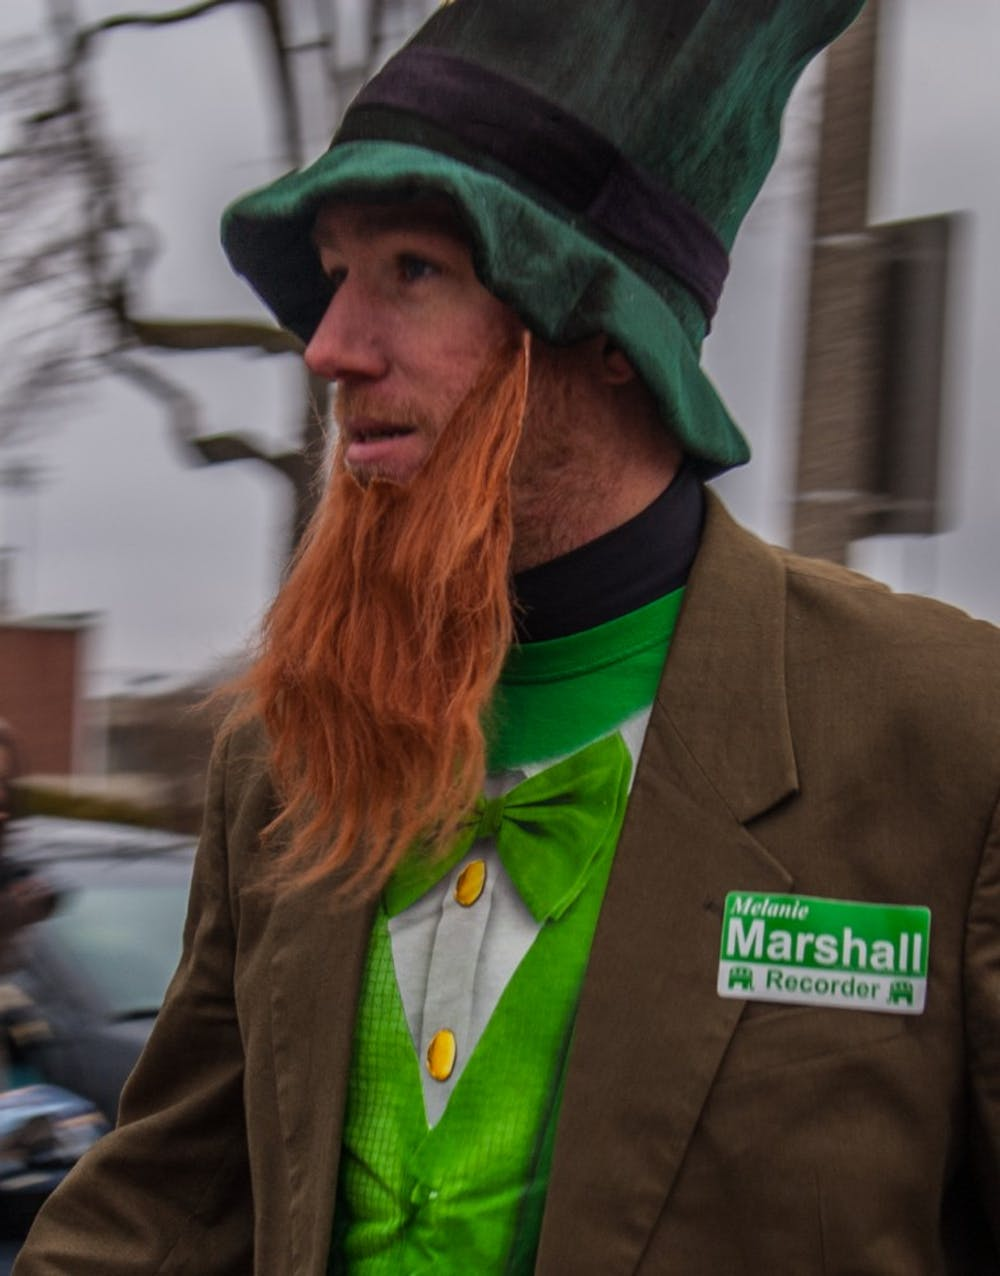 St. Patrick's Day celebrations at the end of the rainbow